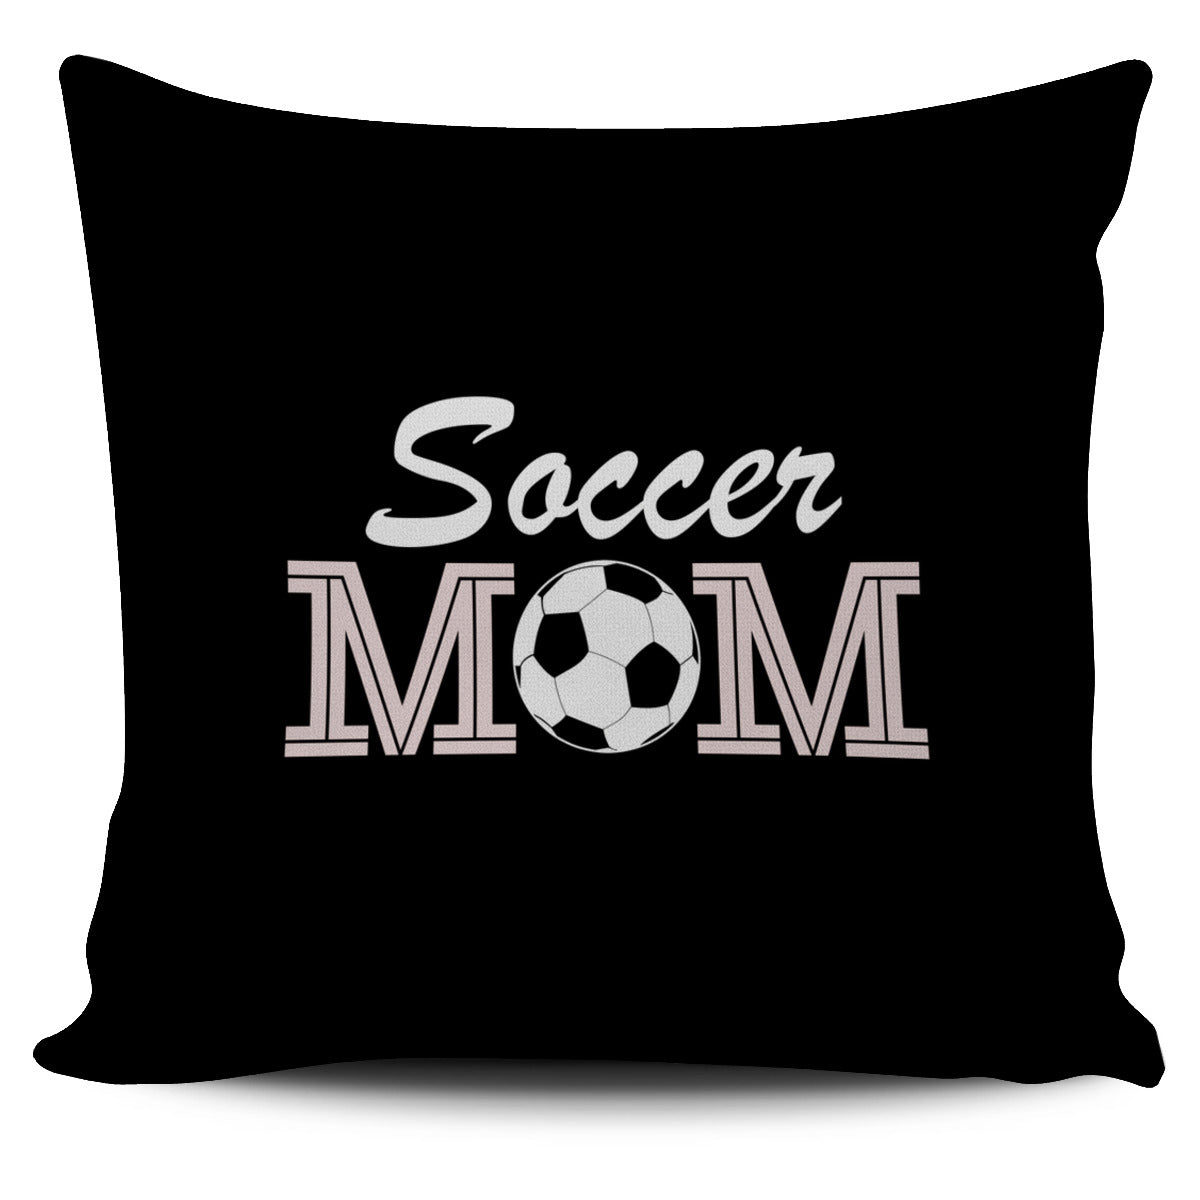 Soccer Mom Pillow Cover AL78